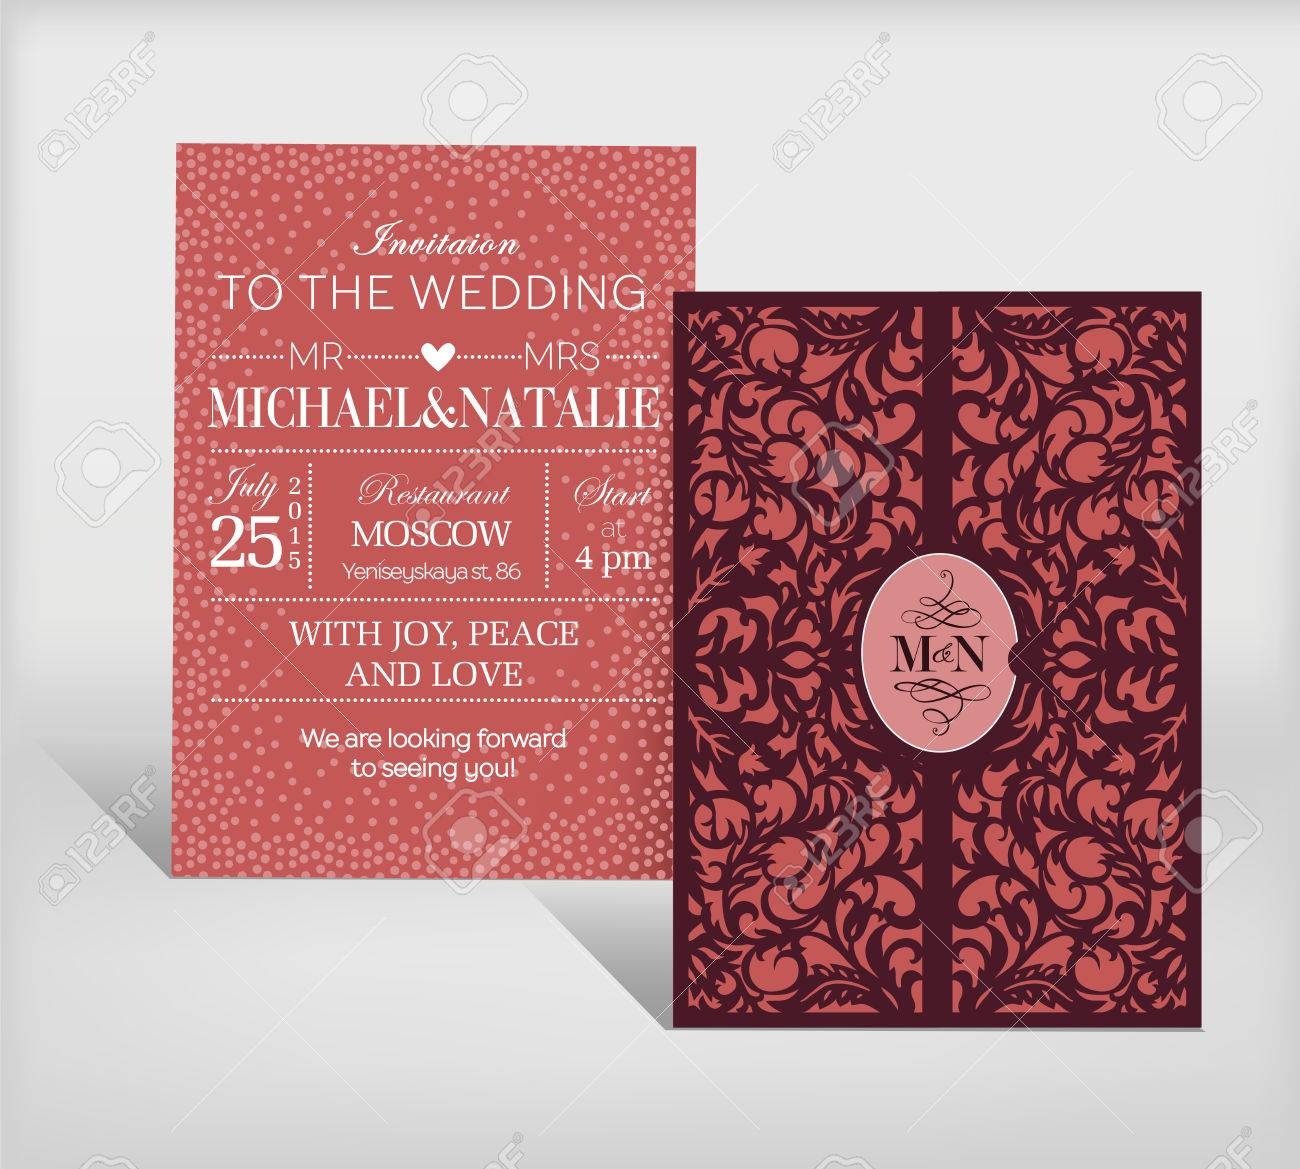 Curved Wedding Invitation Postcard. Royalty Free Cliparts, Vectors ...